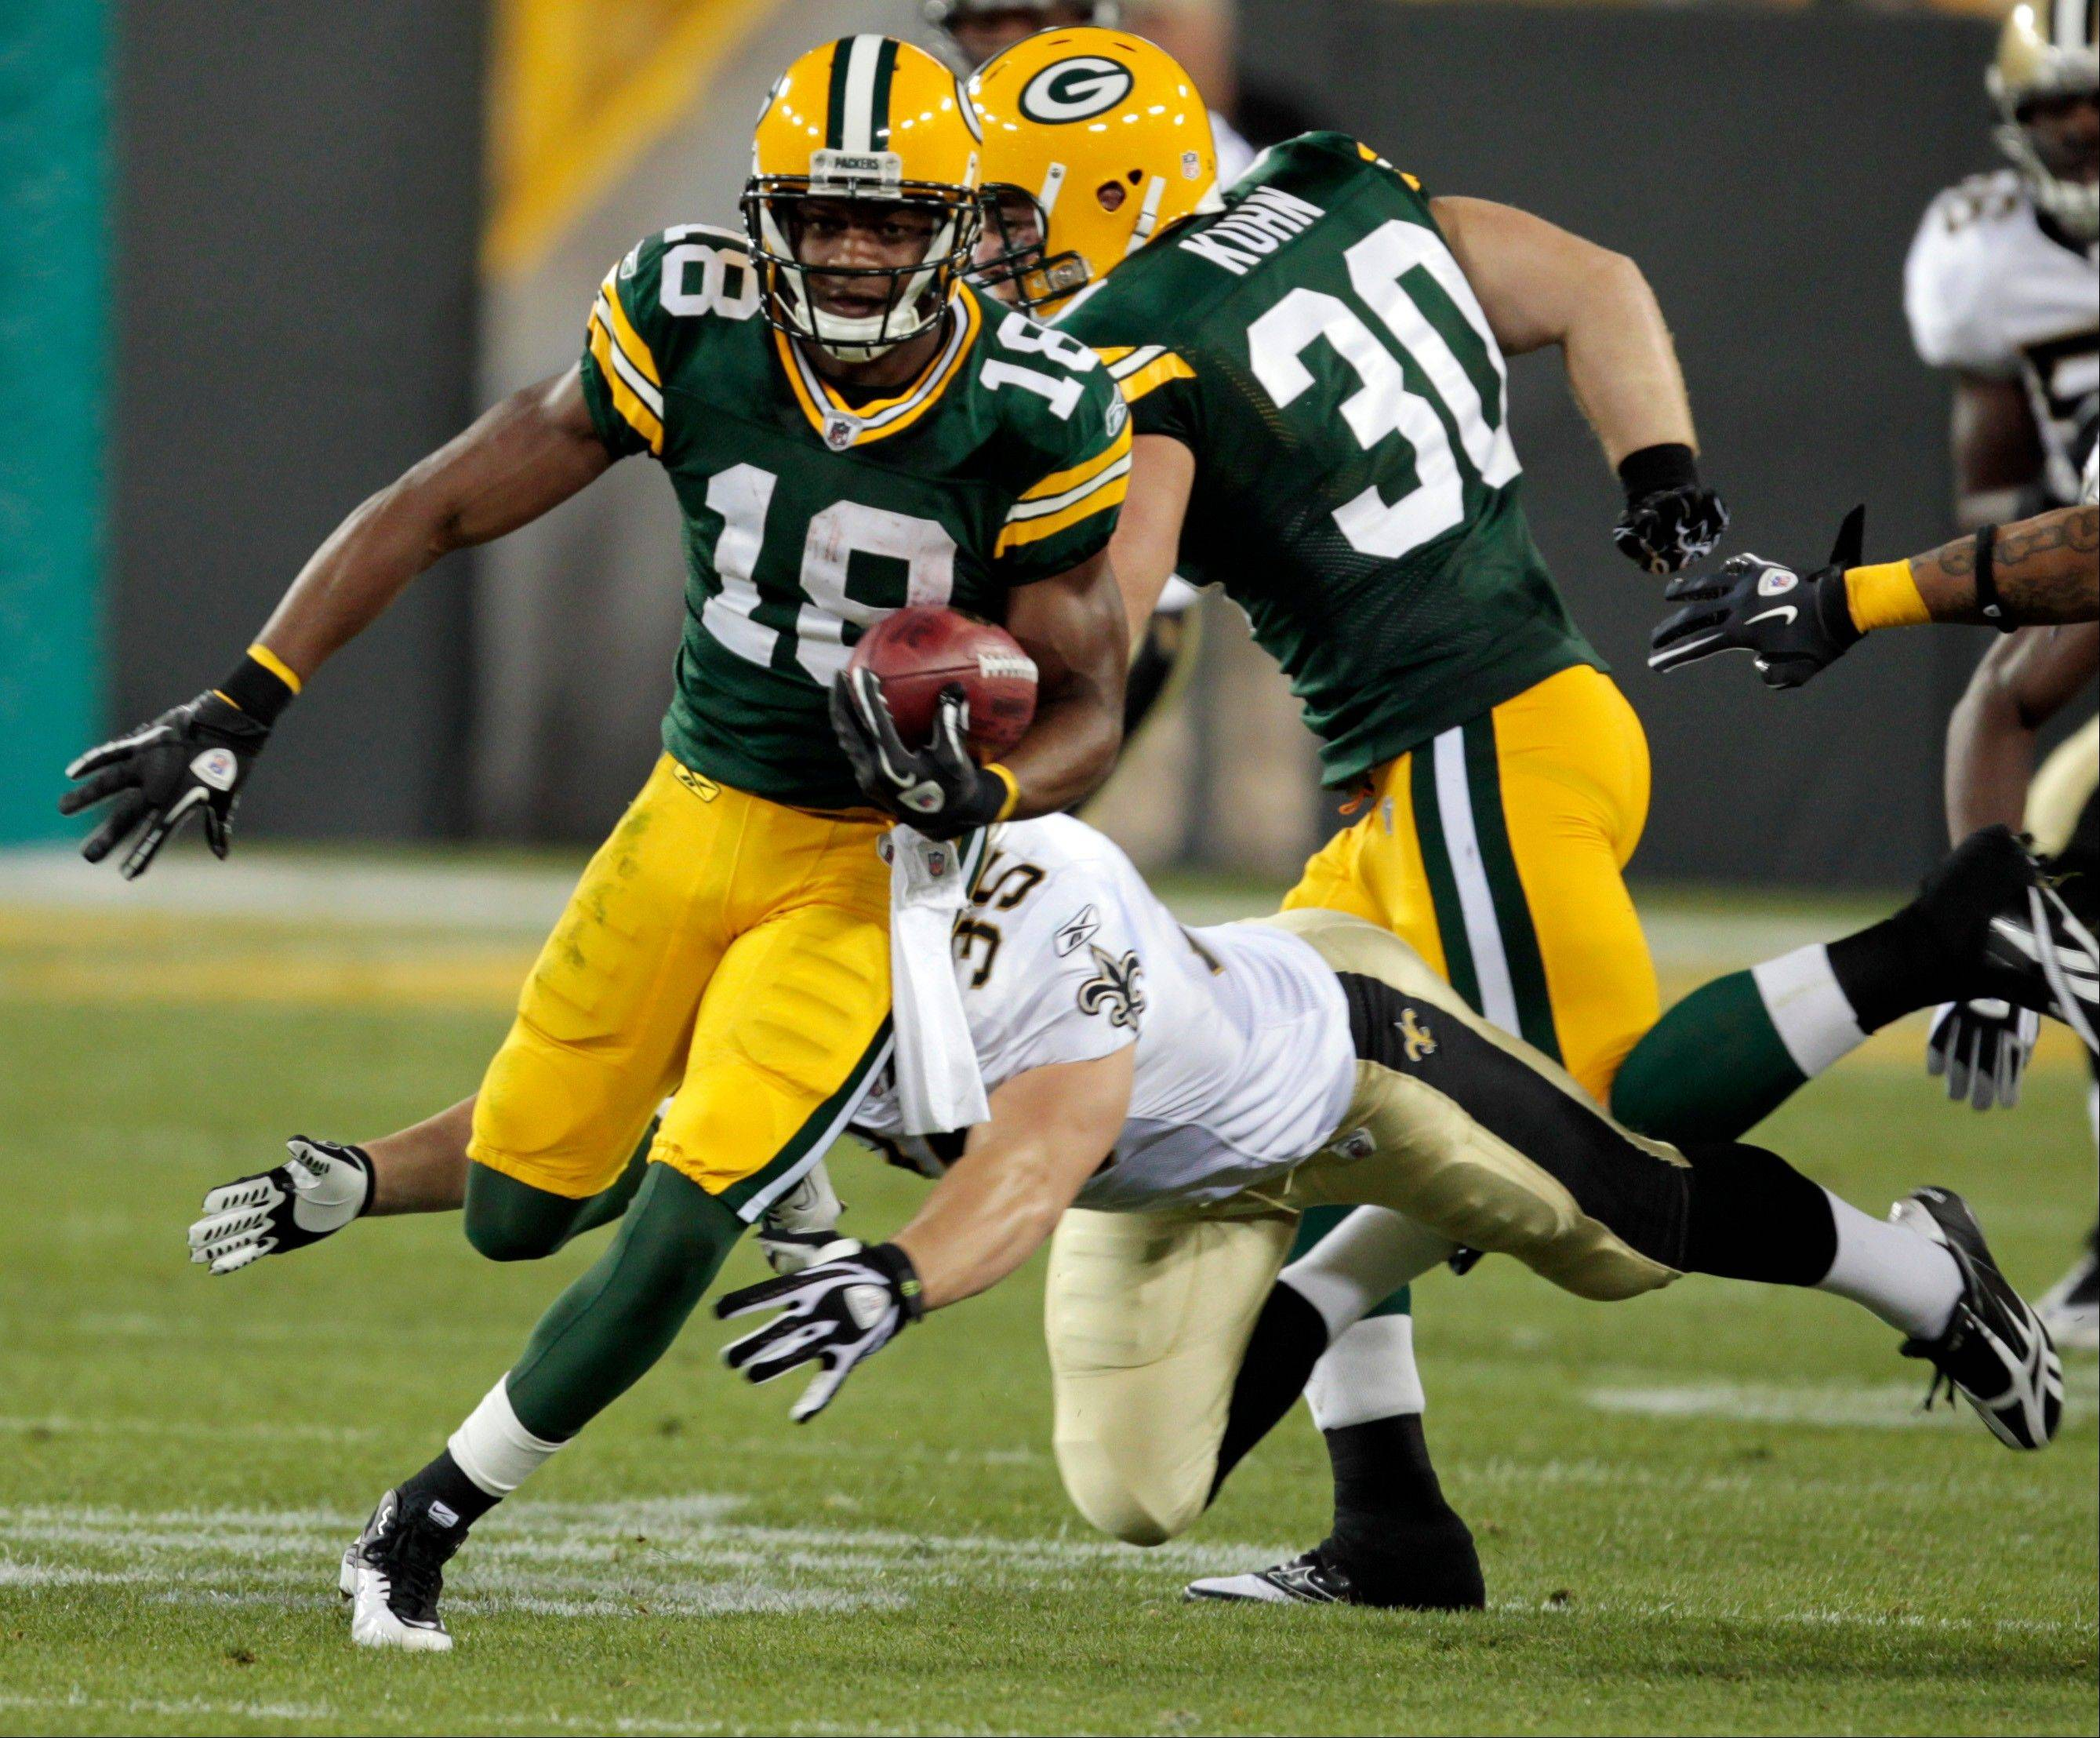 The Packers' Randall Cobb caught 80 passes for 954 yards with 9 touchdowns in 2012.